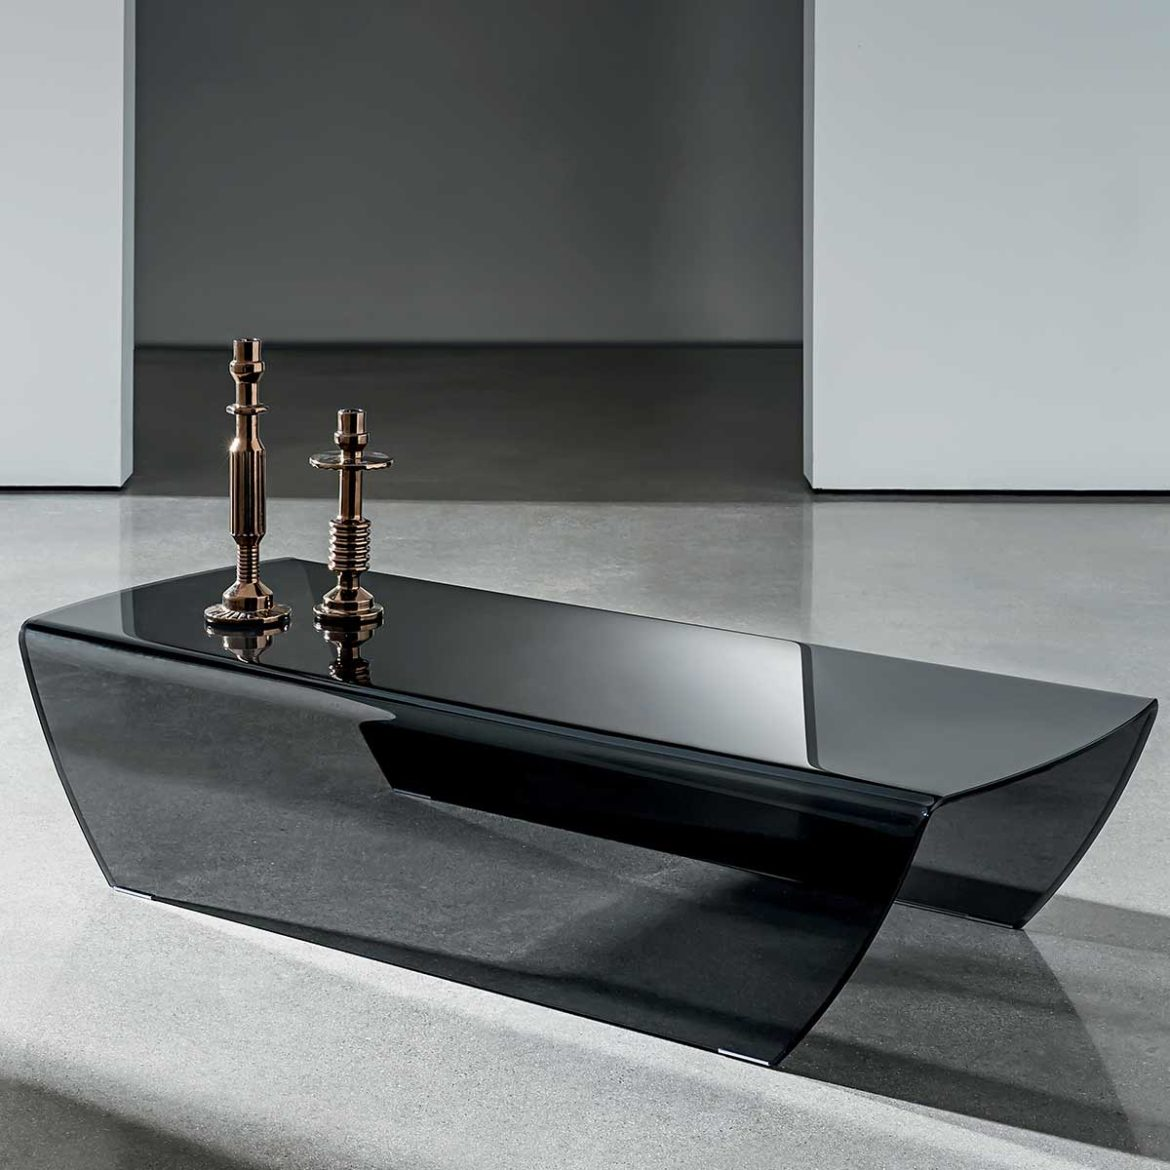 curved glass coffee table - taky